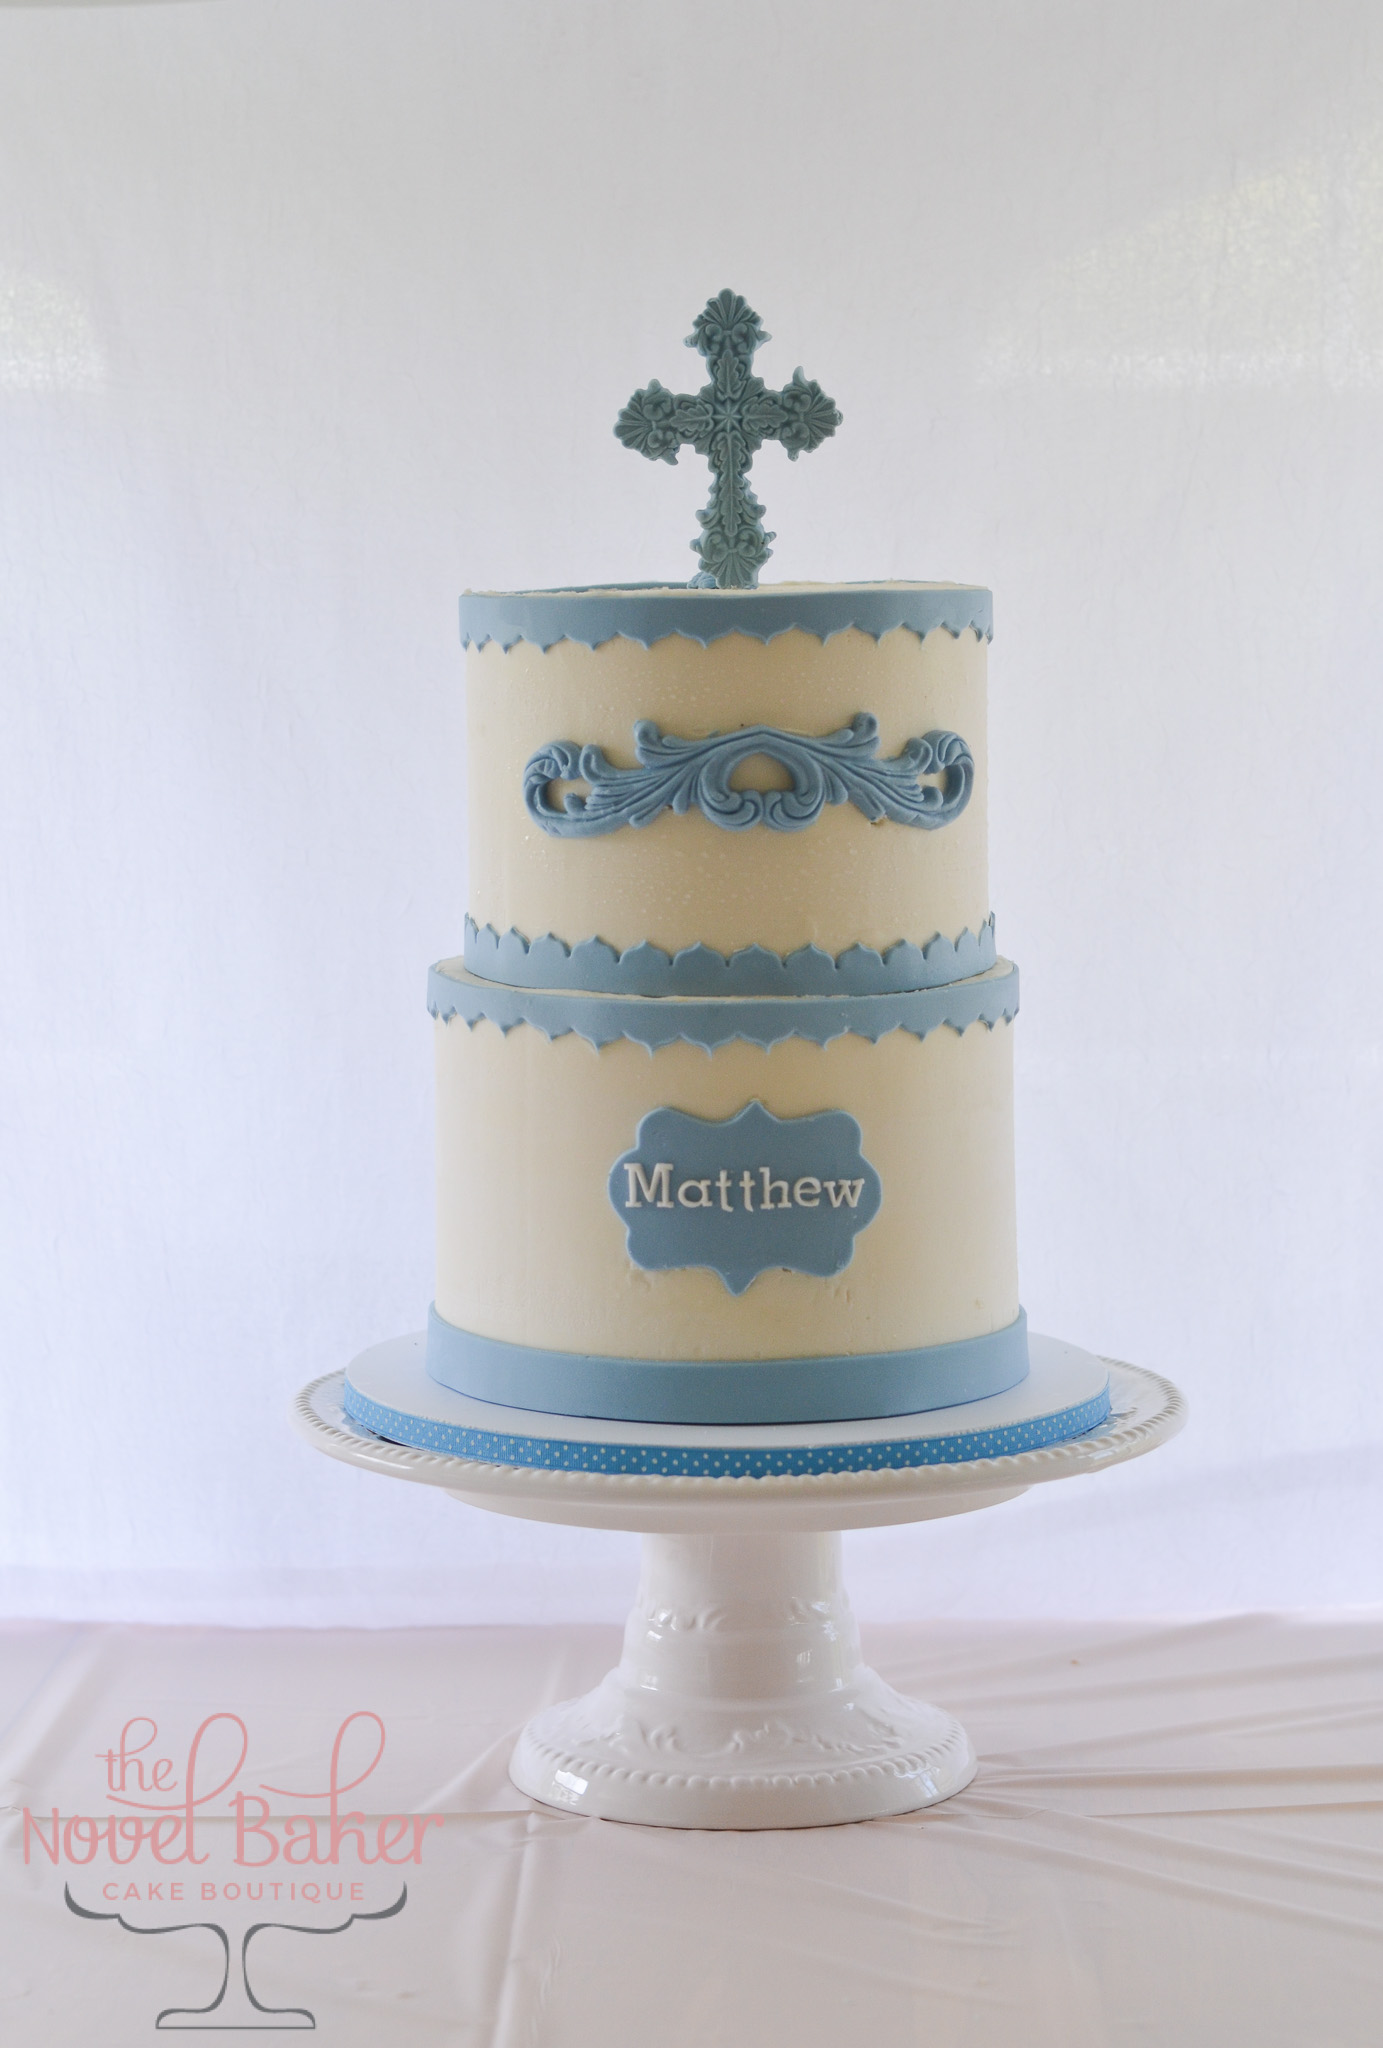 BoysTwo Tier Communion Cake in Ivory Buttercream with blue fondant details of borders, flourish, name plaque, and embossed cross topper.